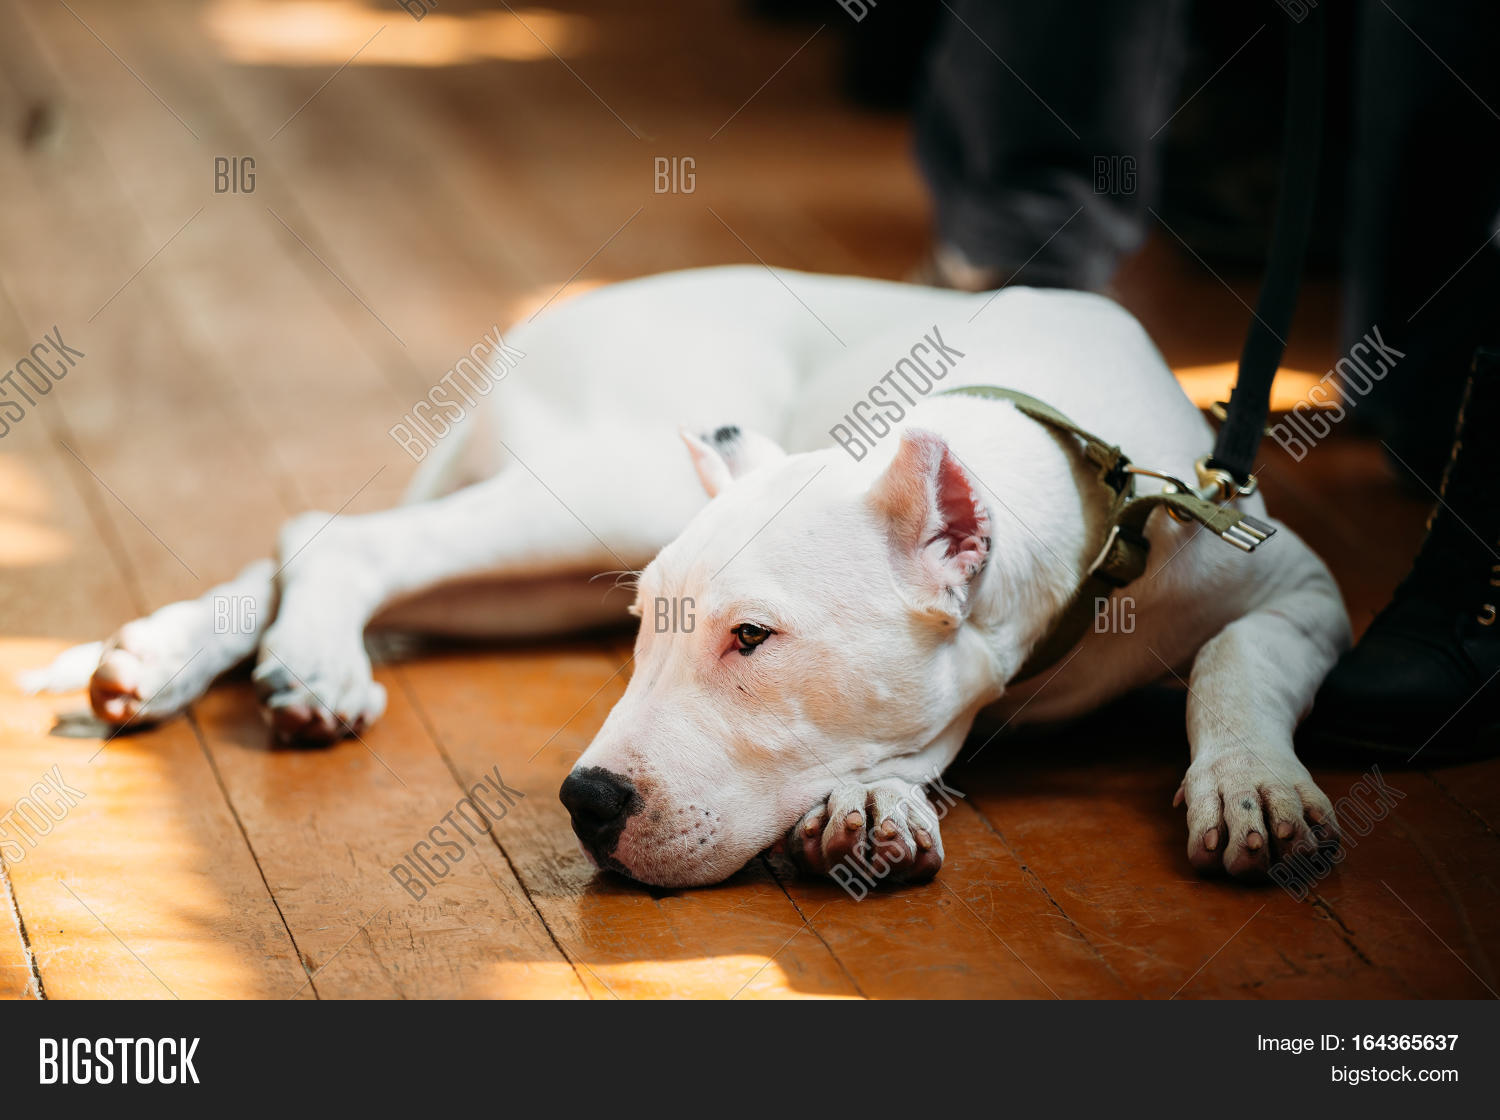 White Puppy Dog Dogo Image & Photo (Free Trial) | Bigstock